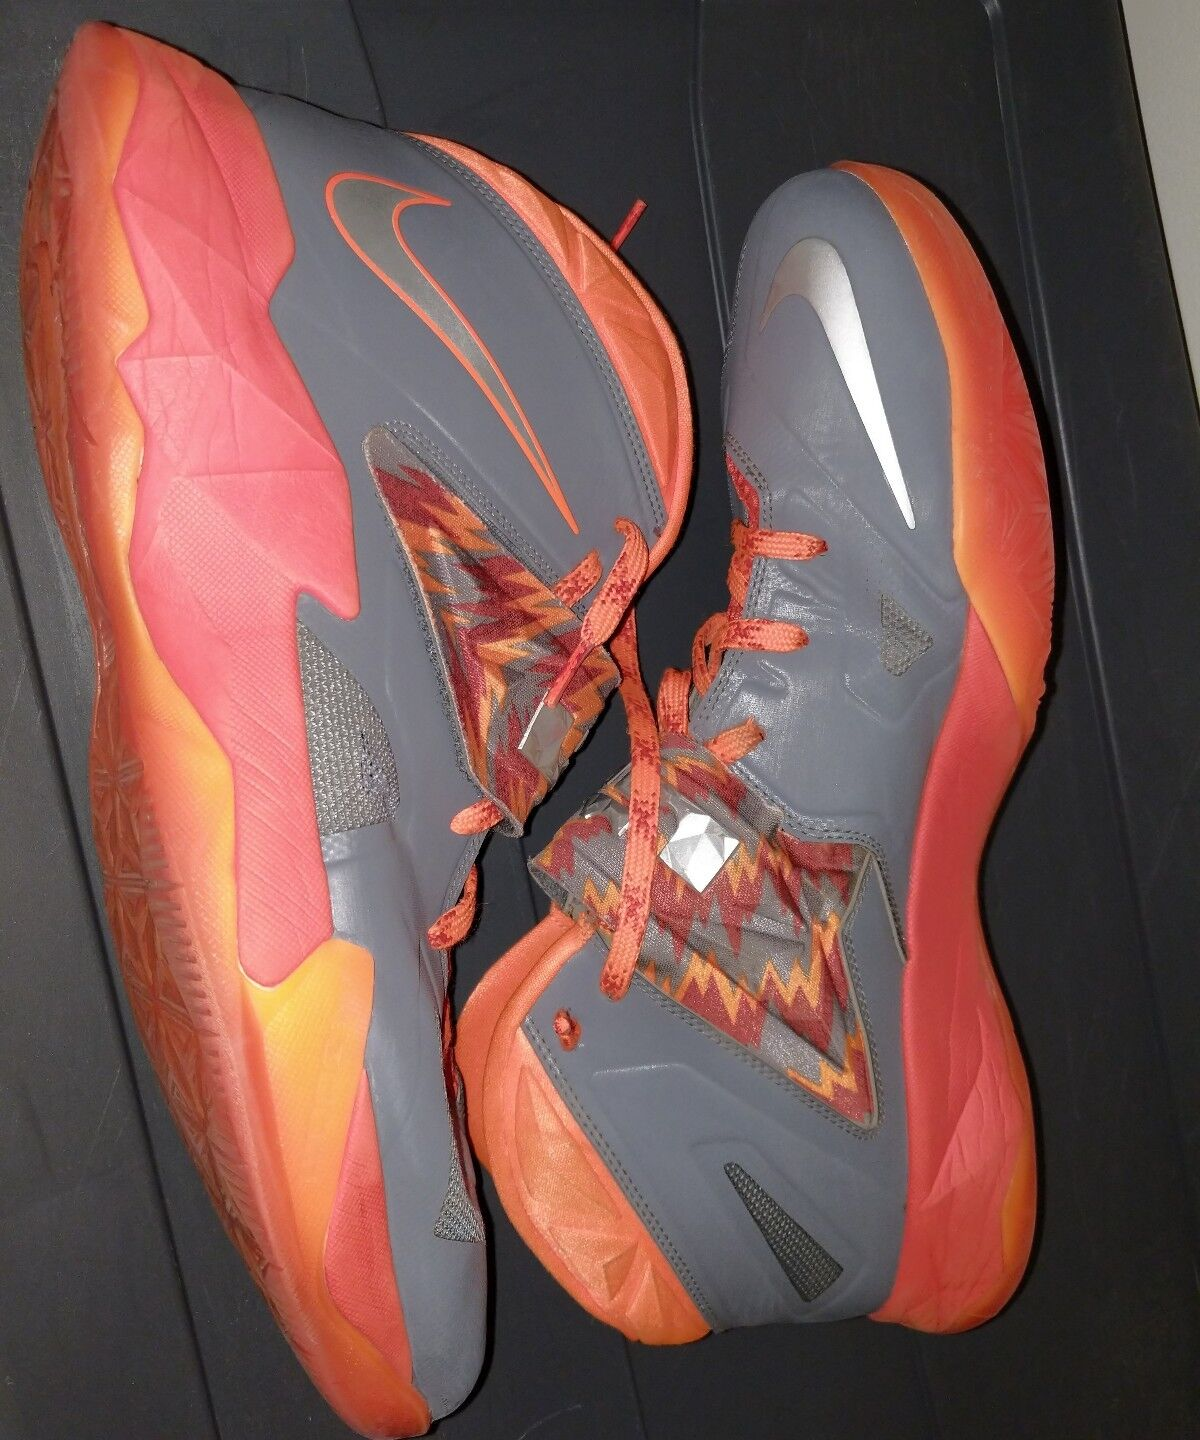 Nike Zoom Soldier Lebron James Total Team NBA Orange Comfortable New shoes for men and women, limited time discount